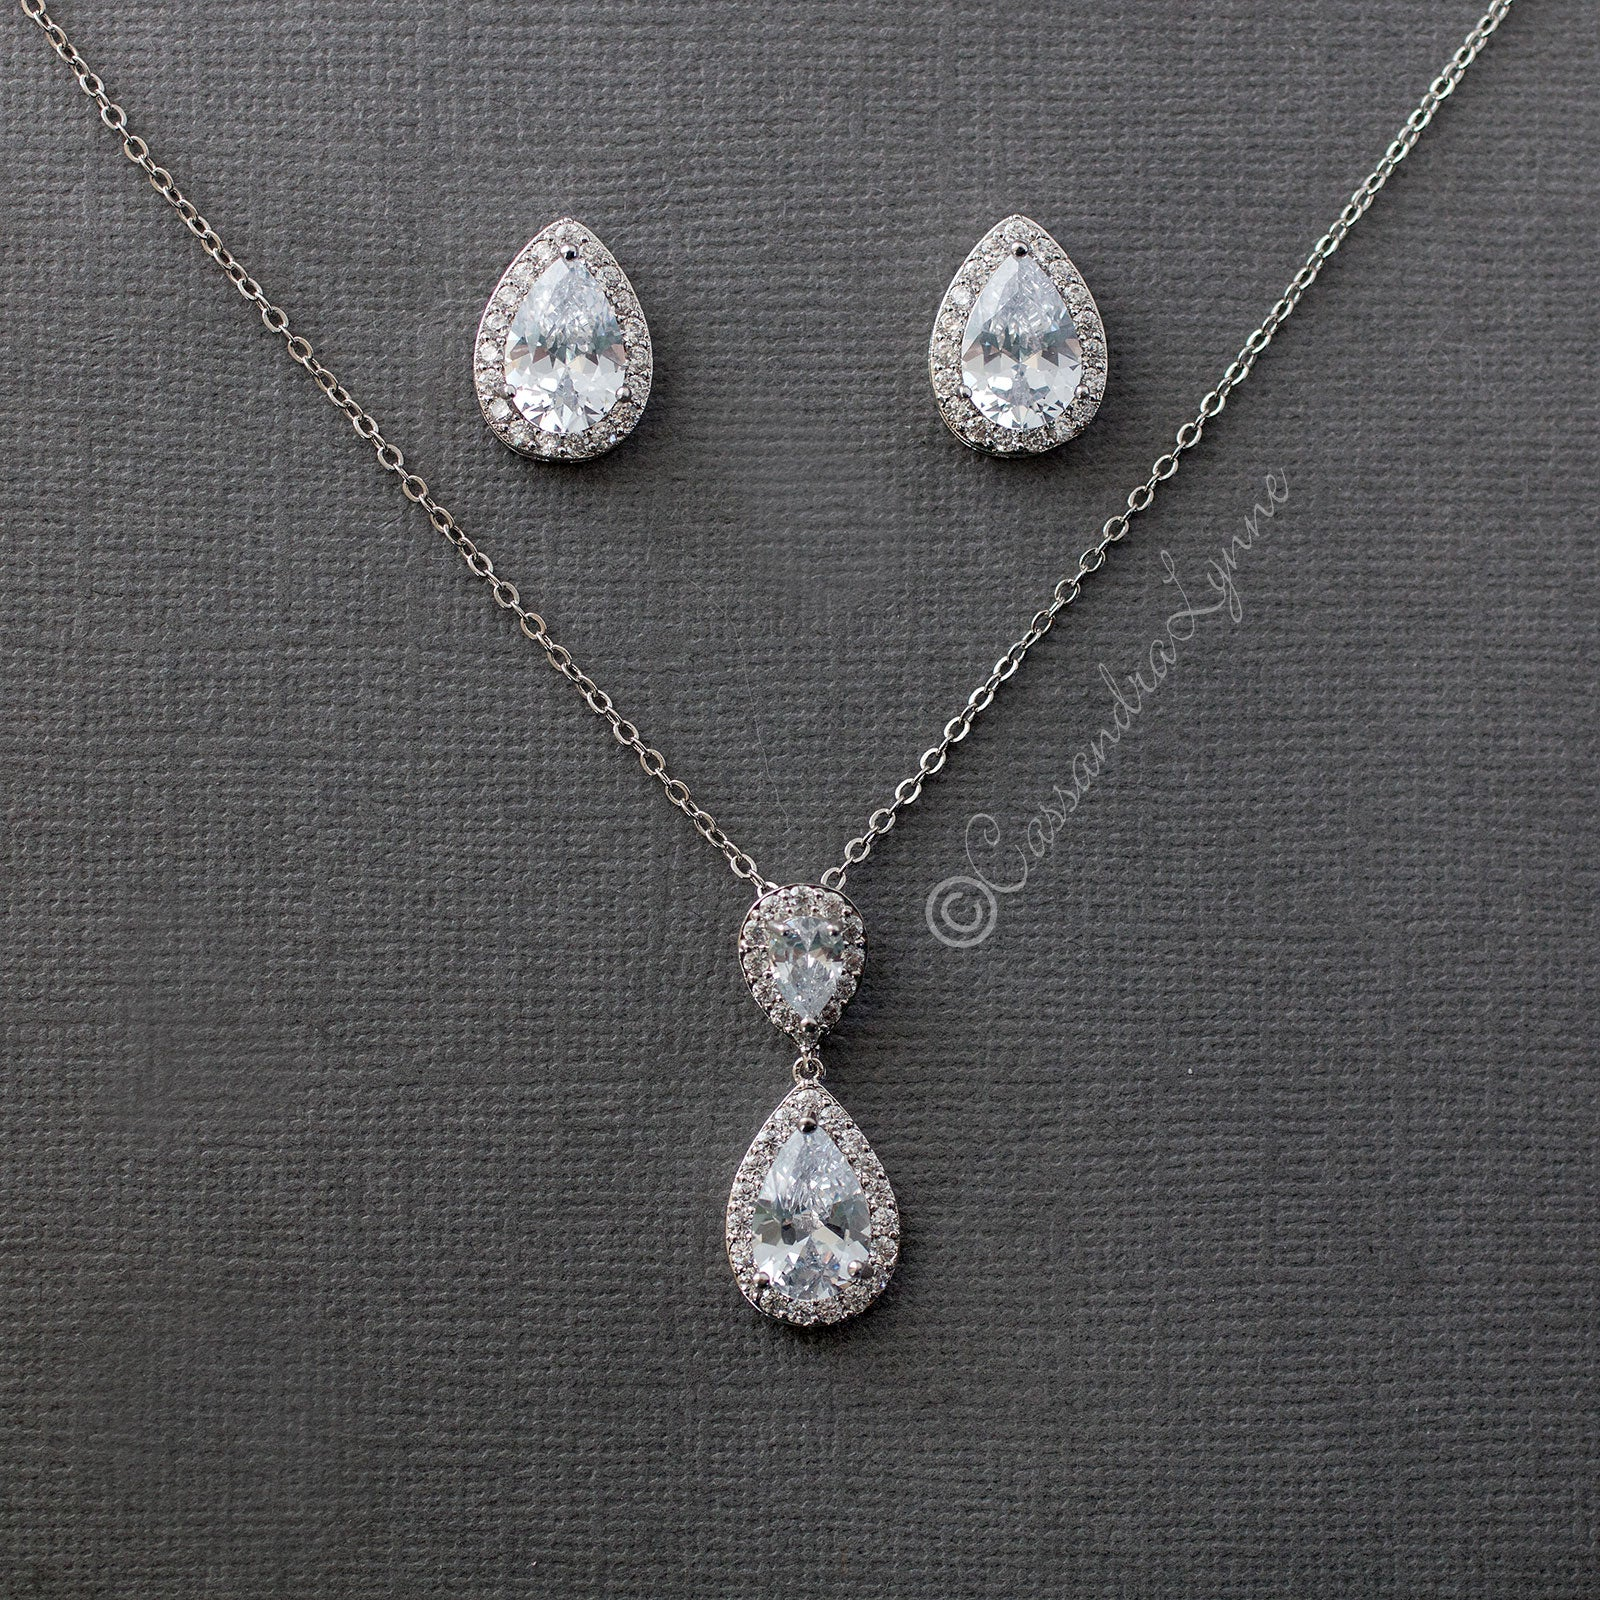 Bridal Necklace Pendant Set